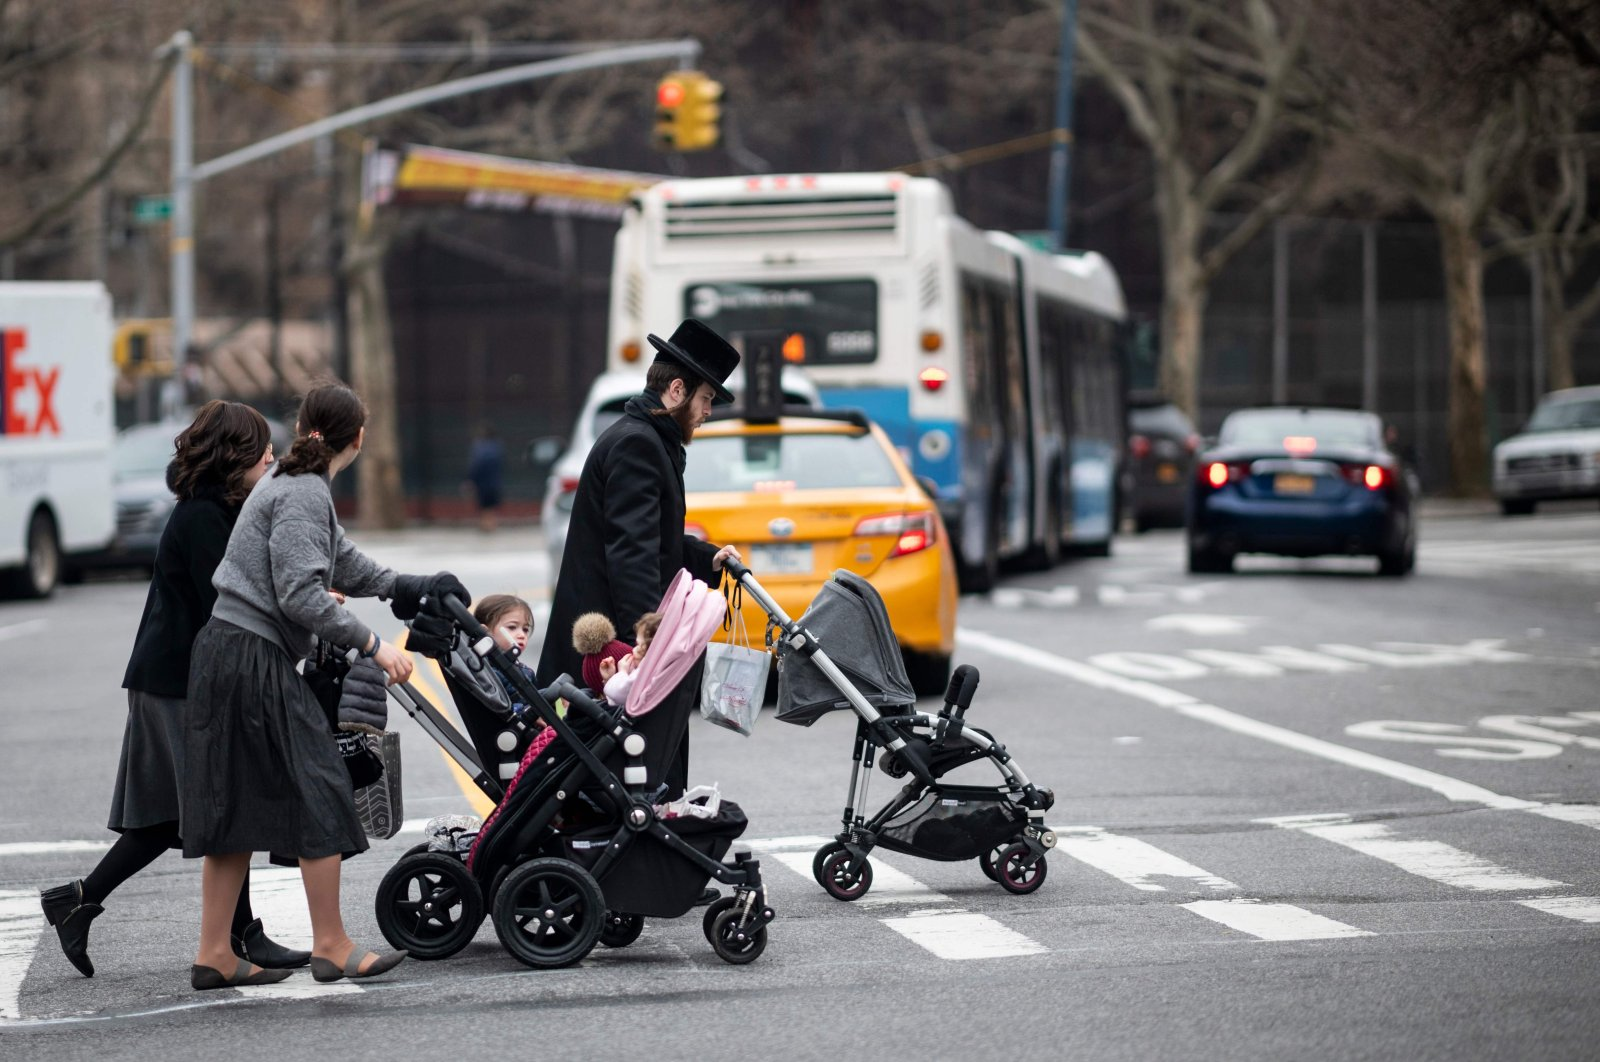 A Jewish man and two woman pushes strollers as they cross a street in a Jewish quarter in Williamsburg Brooklyn, New York City, April 9, 2019. (AFP Photo)